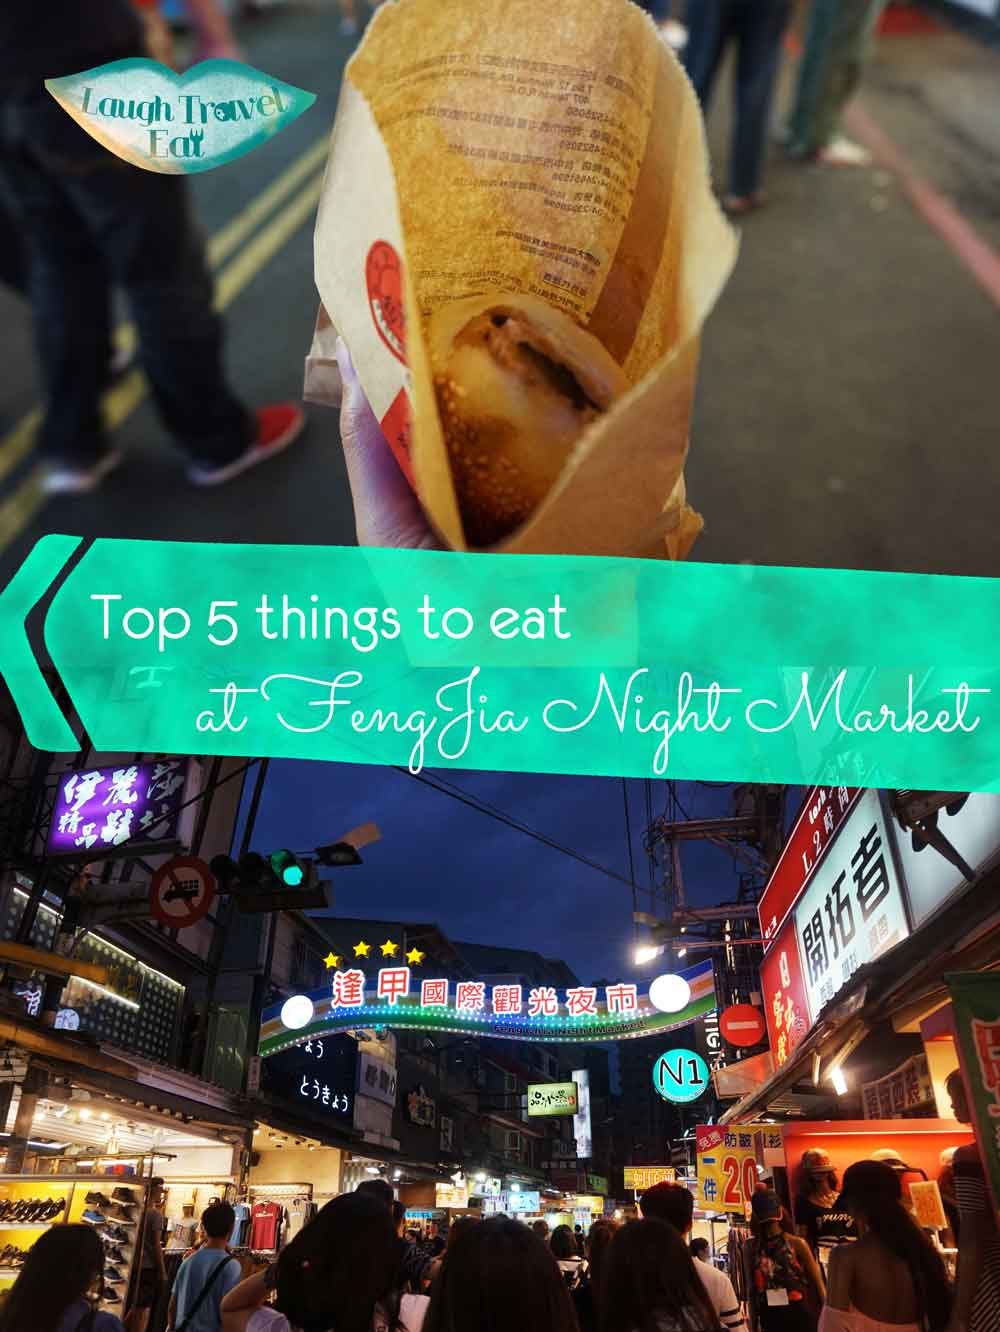 Top 5 things to eat at FengJia Night Market | Laugh Travel Eat